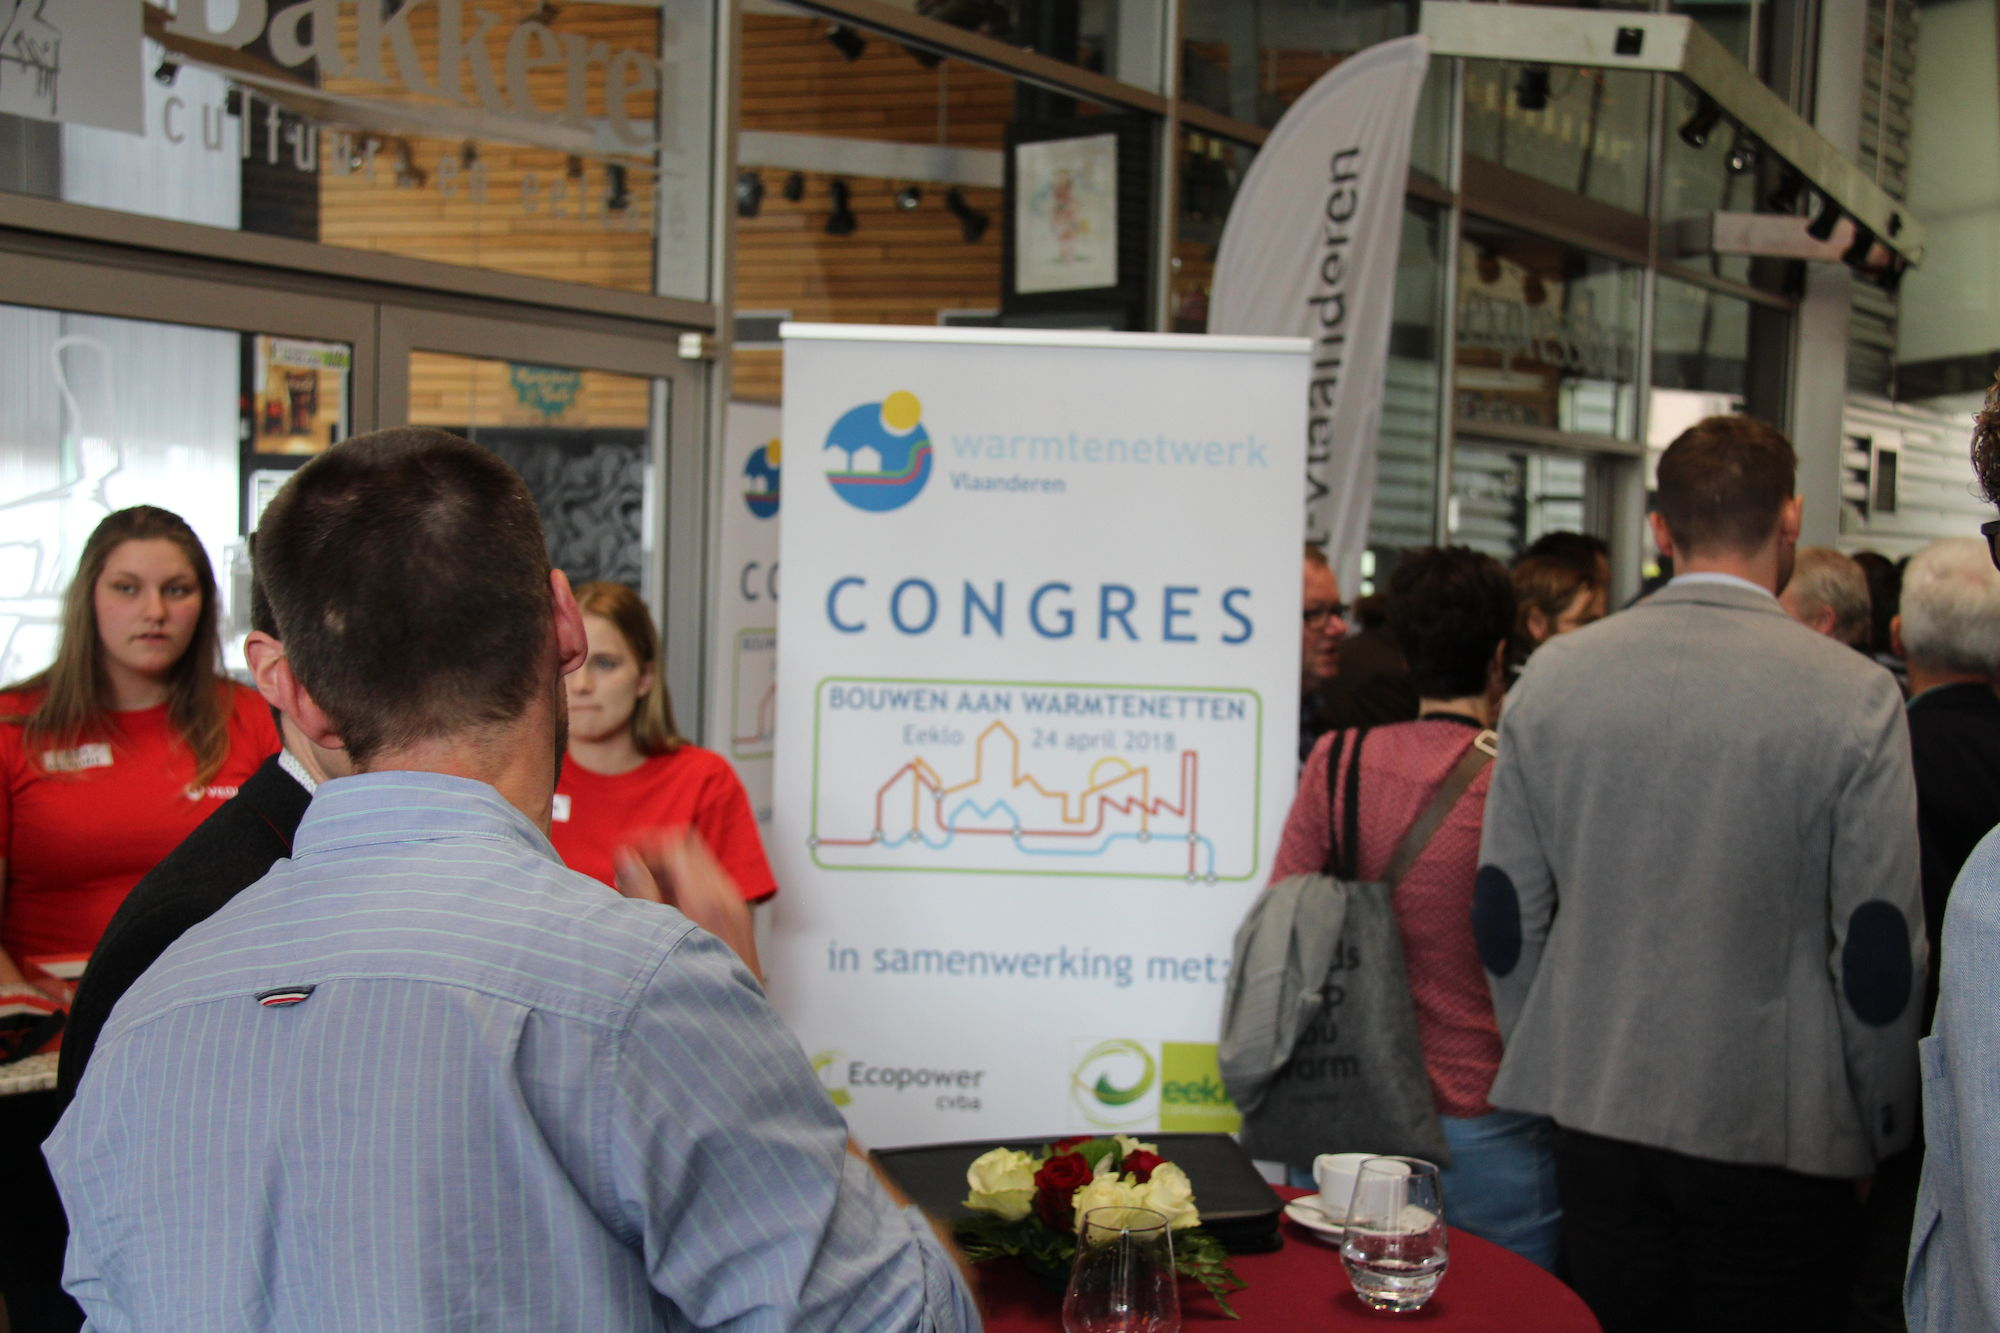 20180424_warmtecongres_VM_00160.JPG